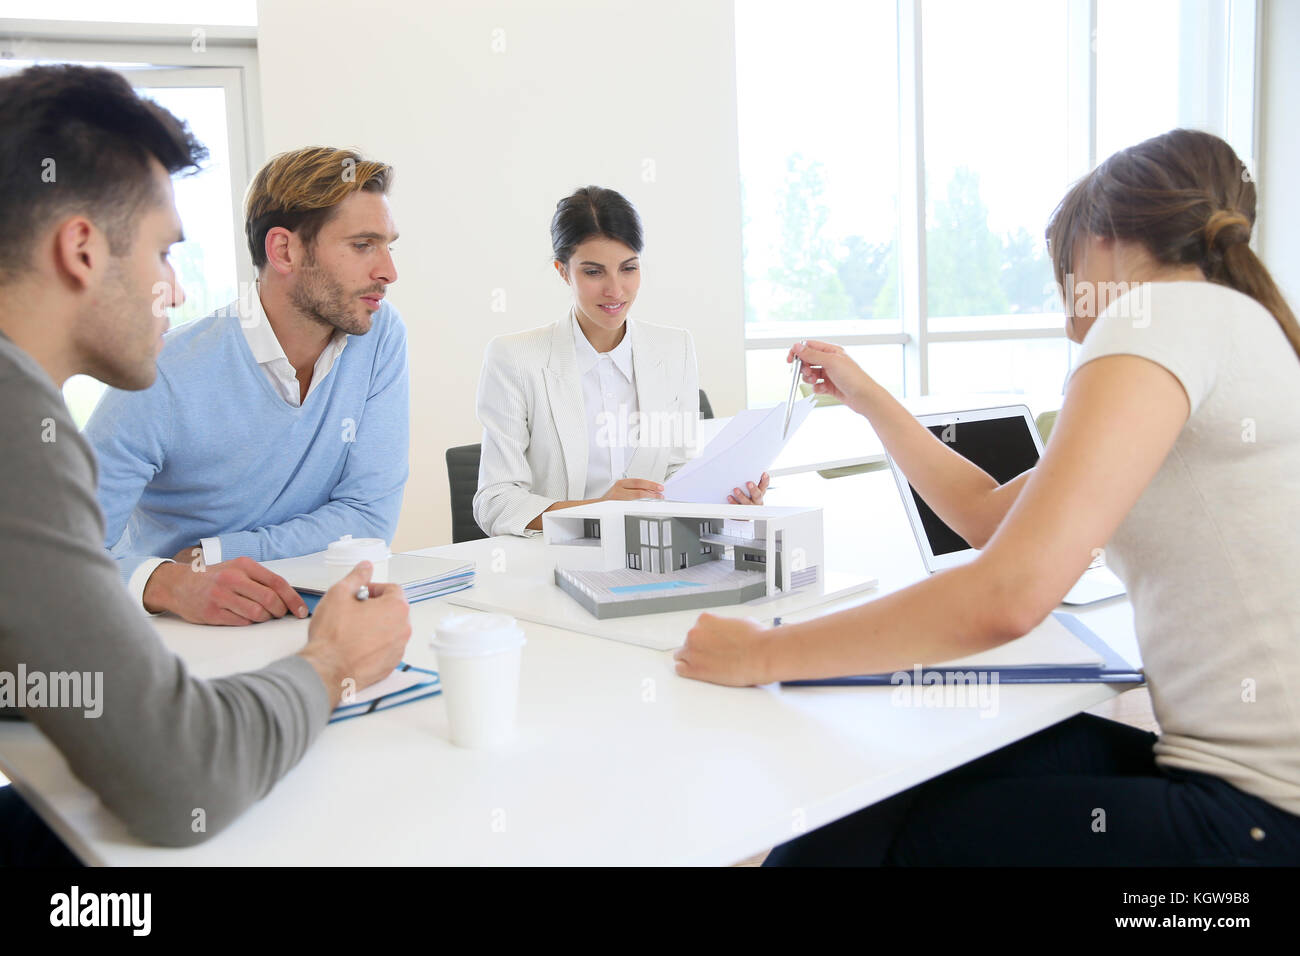 Team of architects meeting around table to talk about project - Stock Image